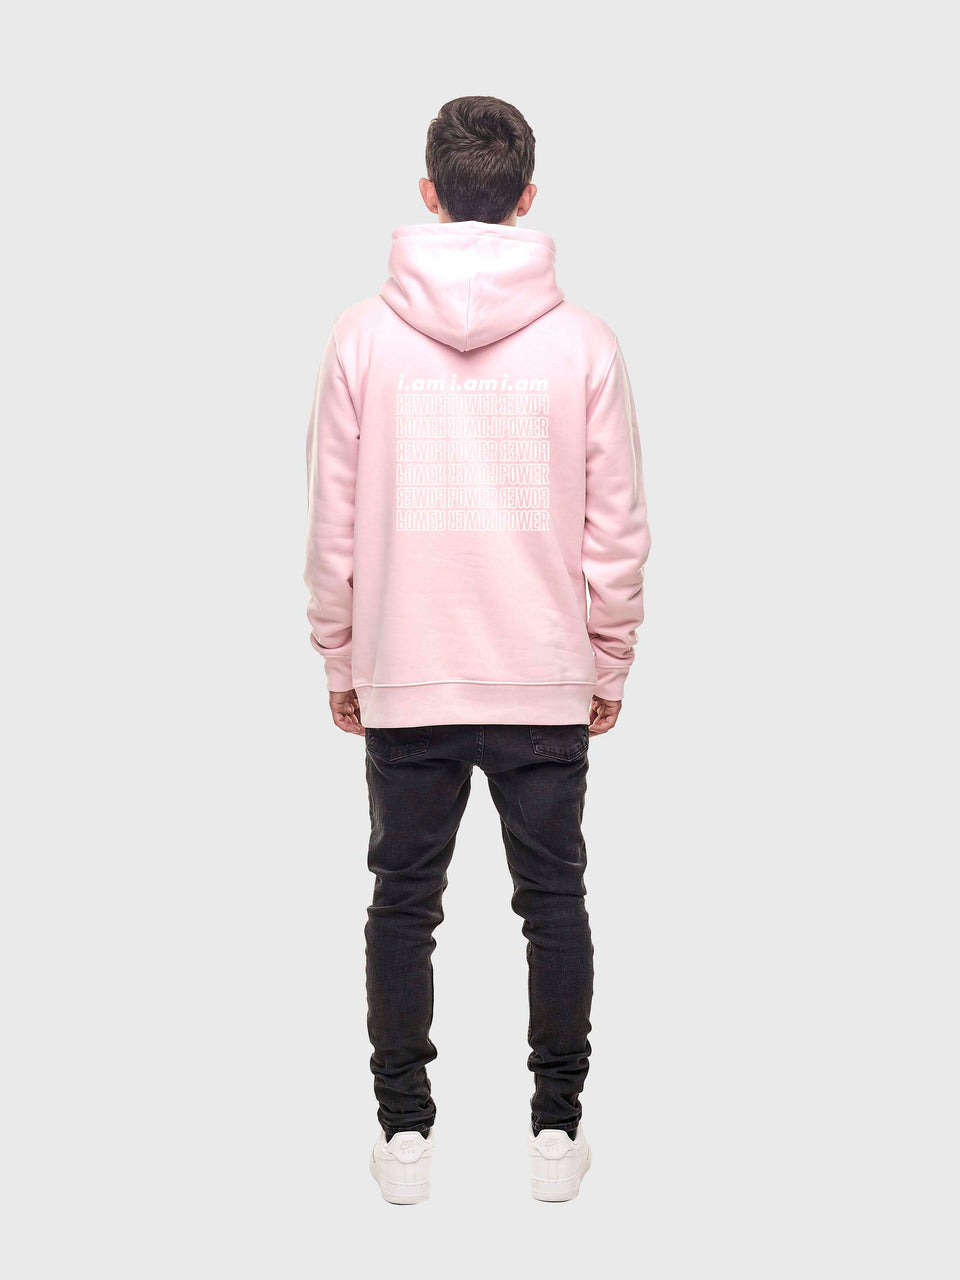 Power - Pink - Unisex pull over hoodie